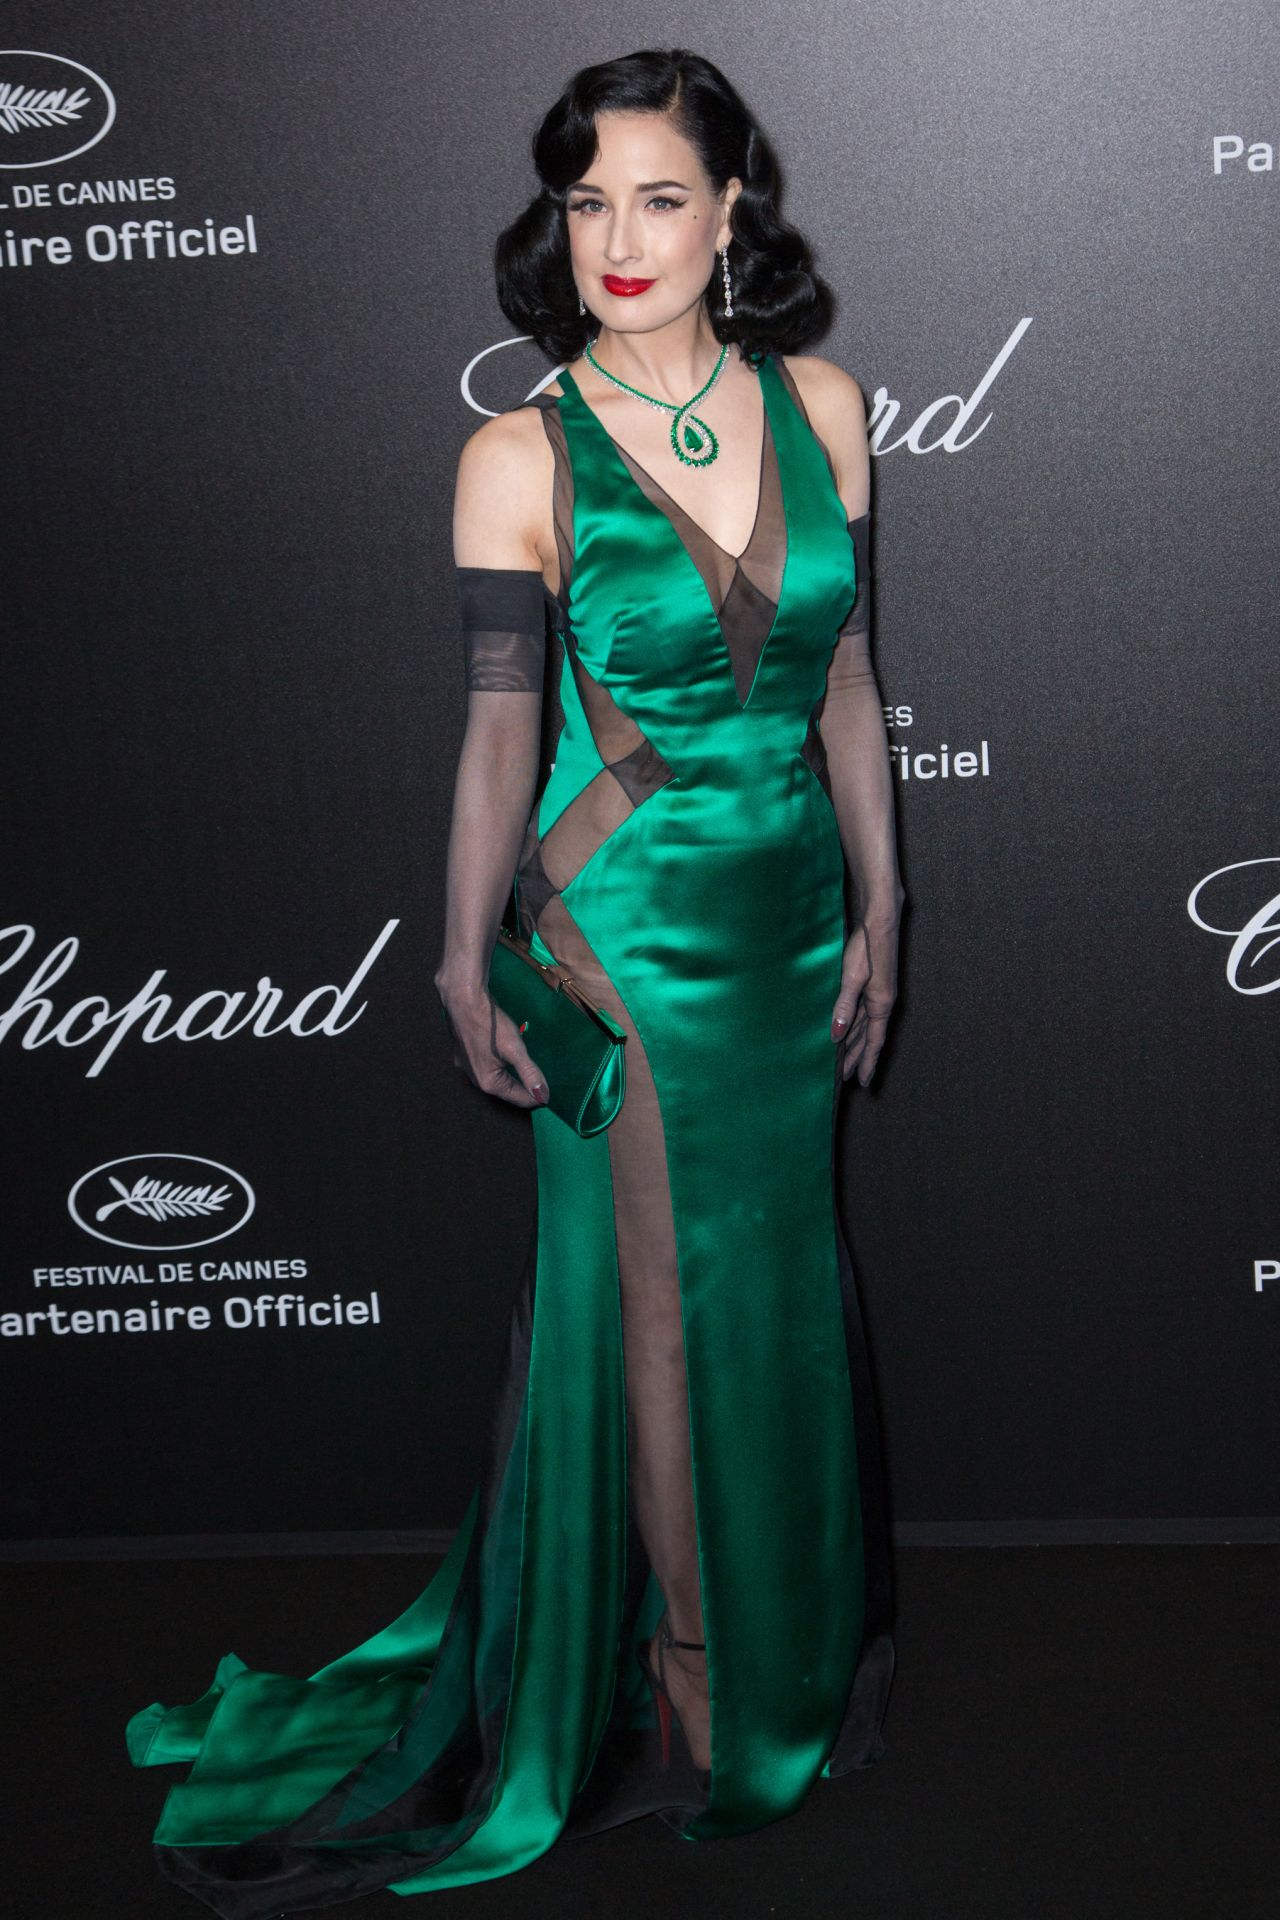 https://celebmafia.com/wp-content/uploads/2019/05/dita-von-teese-chopard-party-at-the-72nd-cannes-film-festival-9.jpg